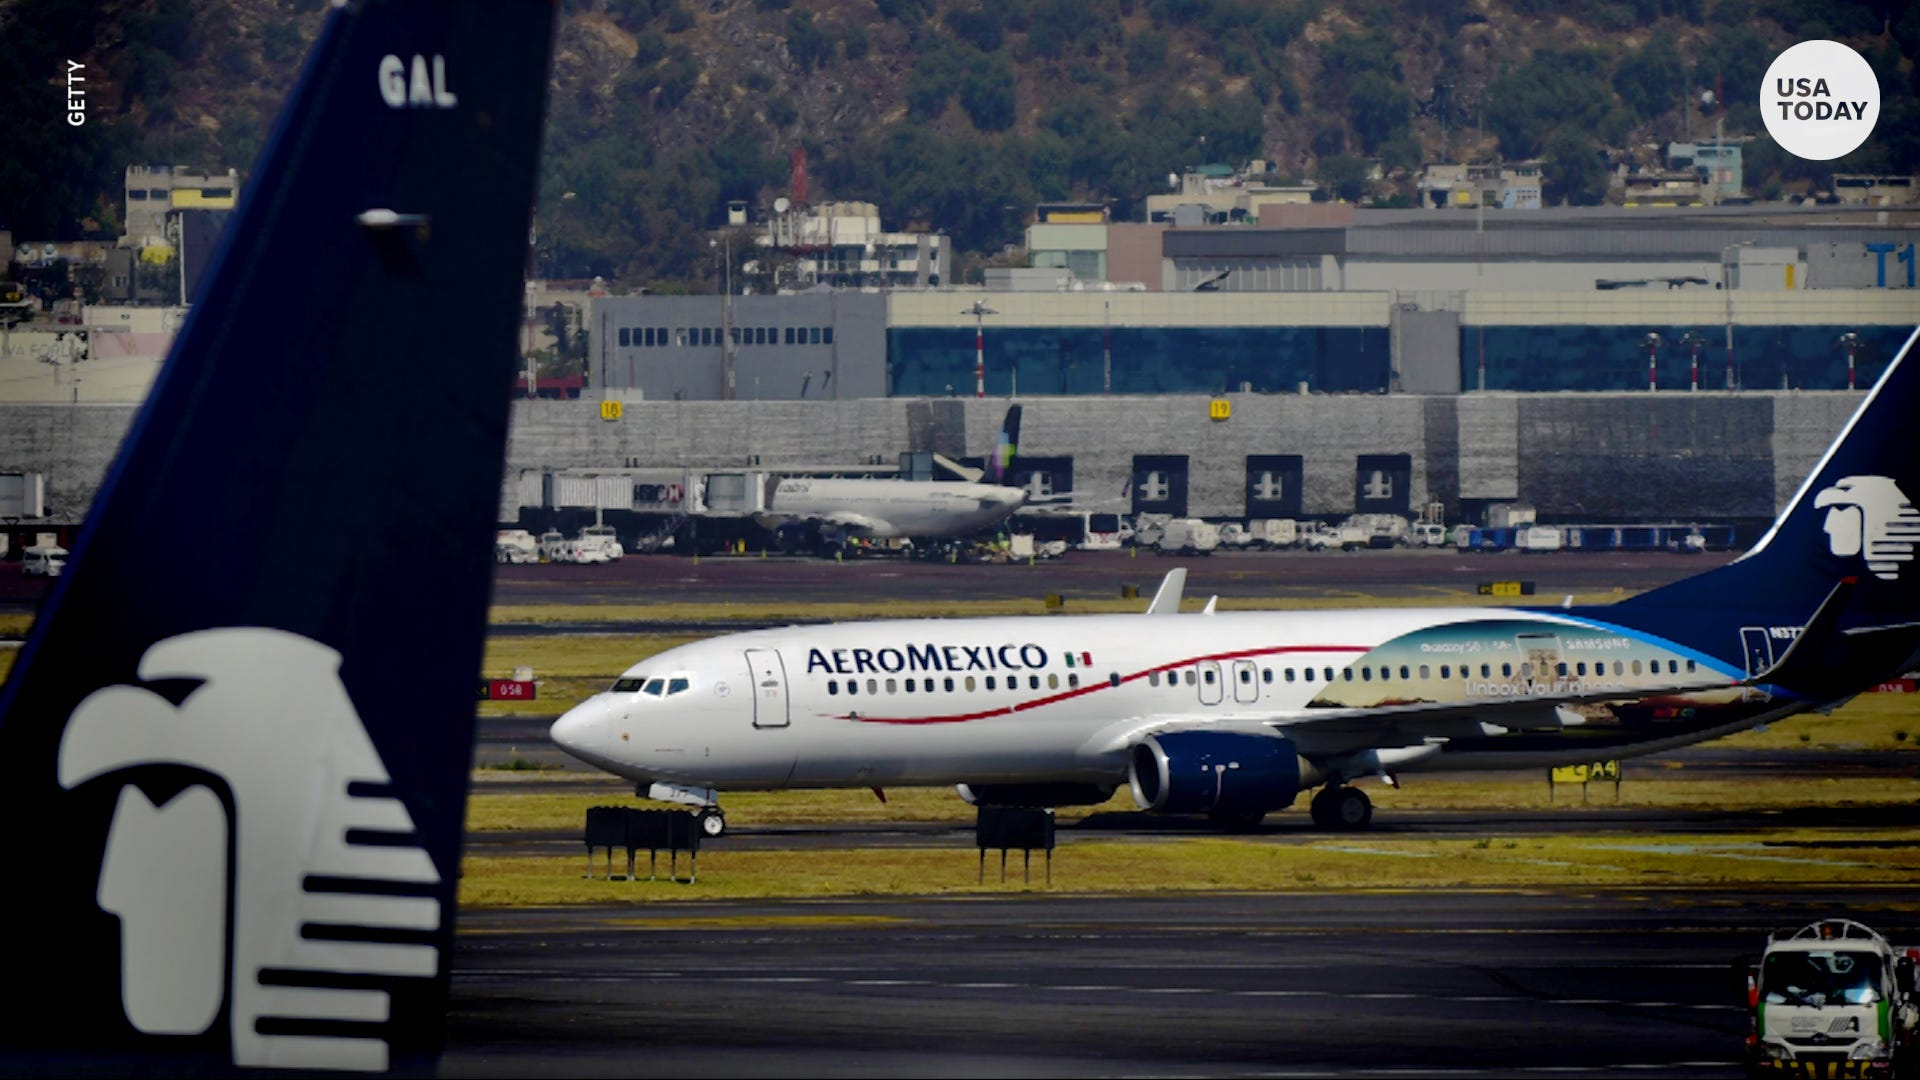 Aeromexico ad goes viral with 'DNA discount'